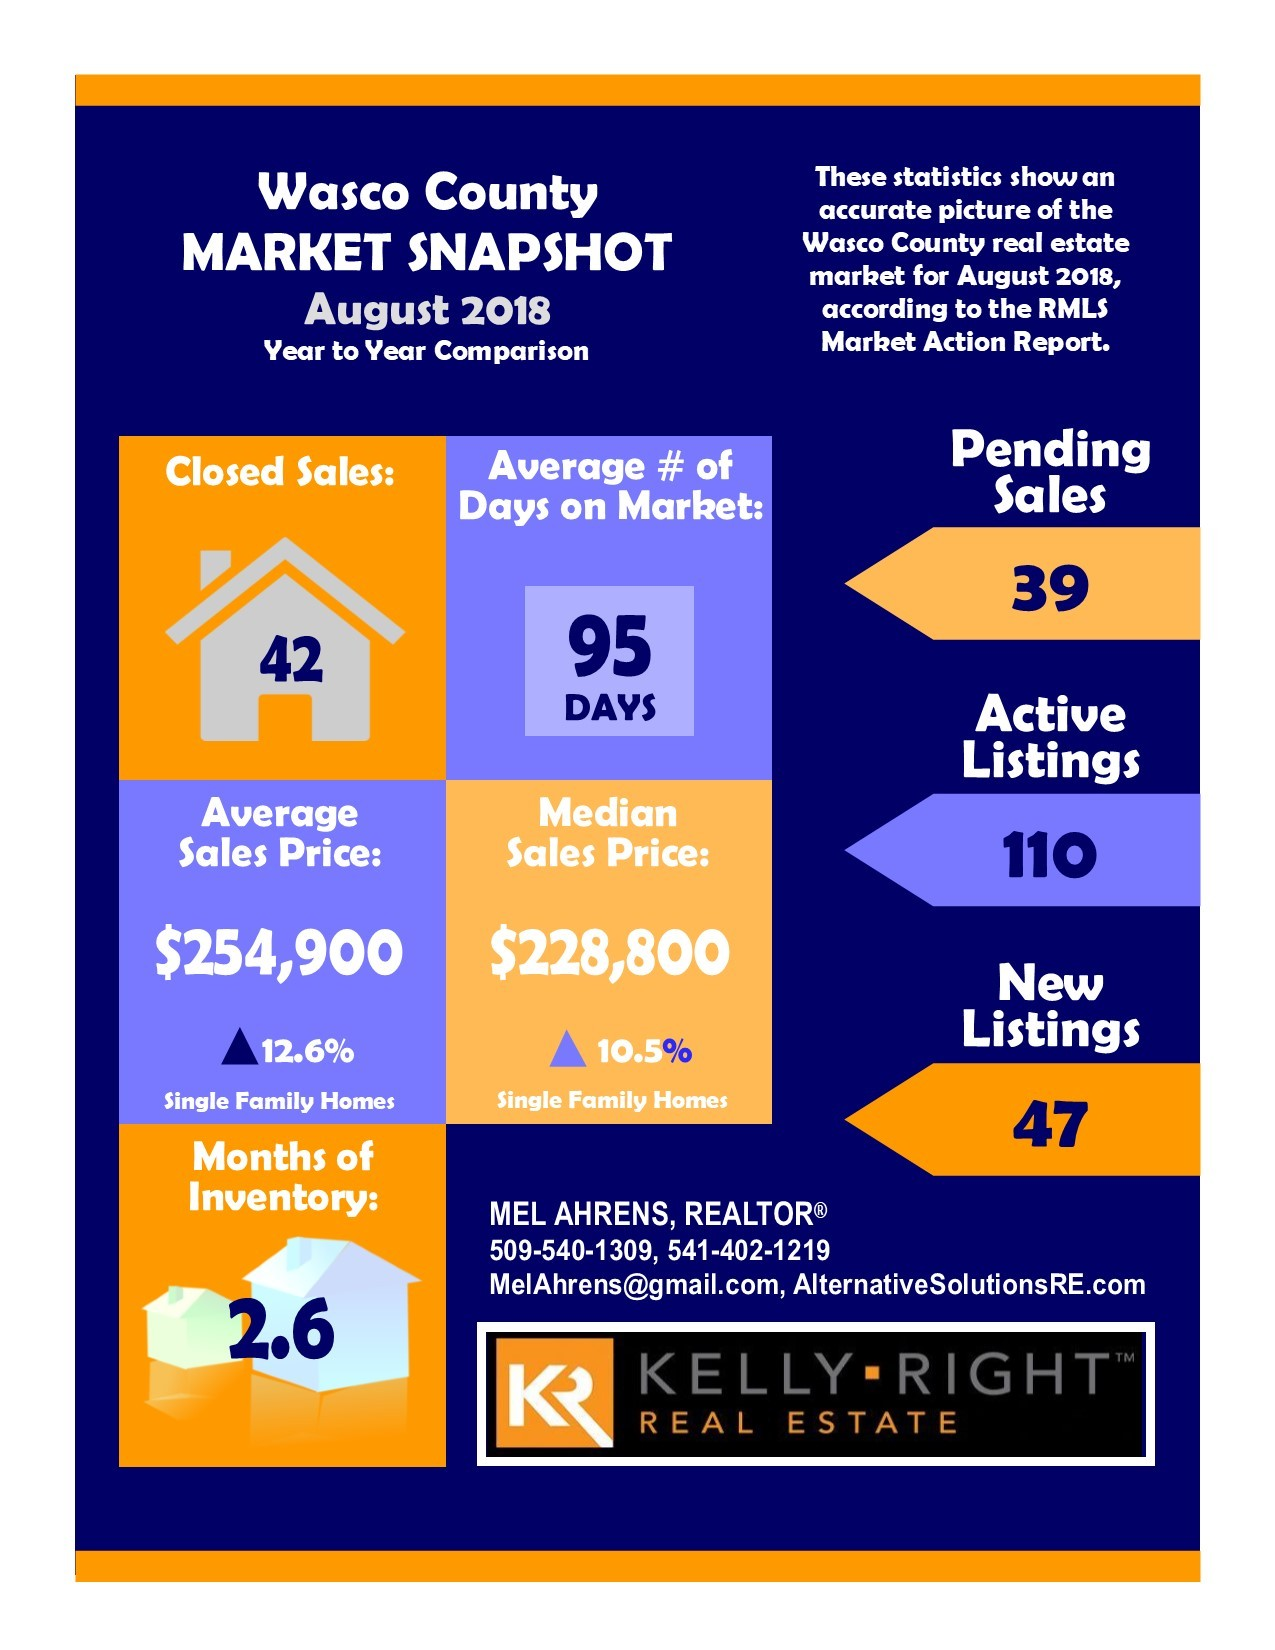 Wasco County Real Estate Market Report August 2018 Infographic